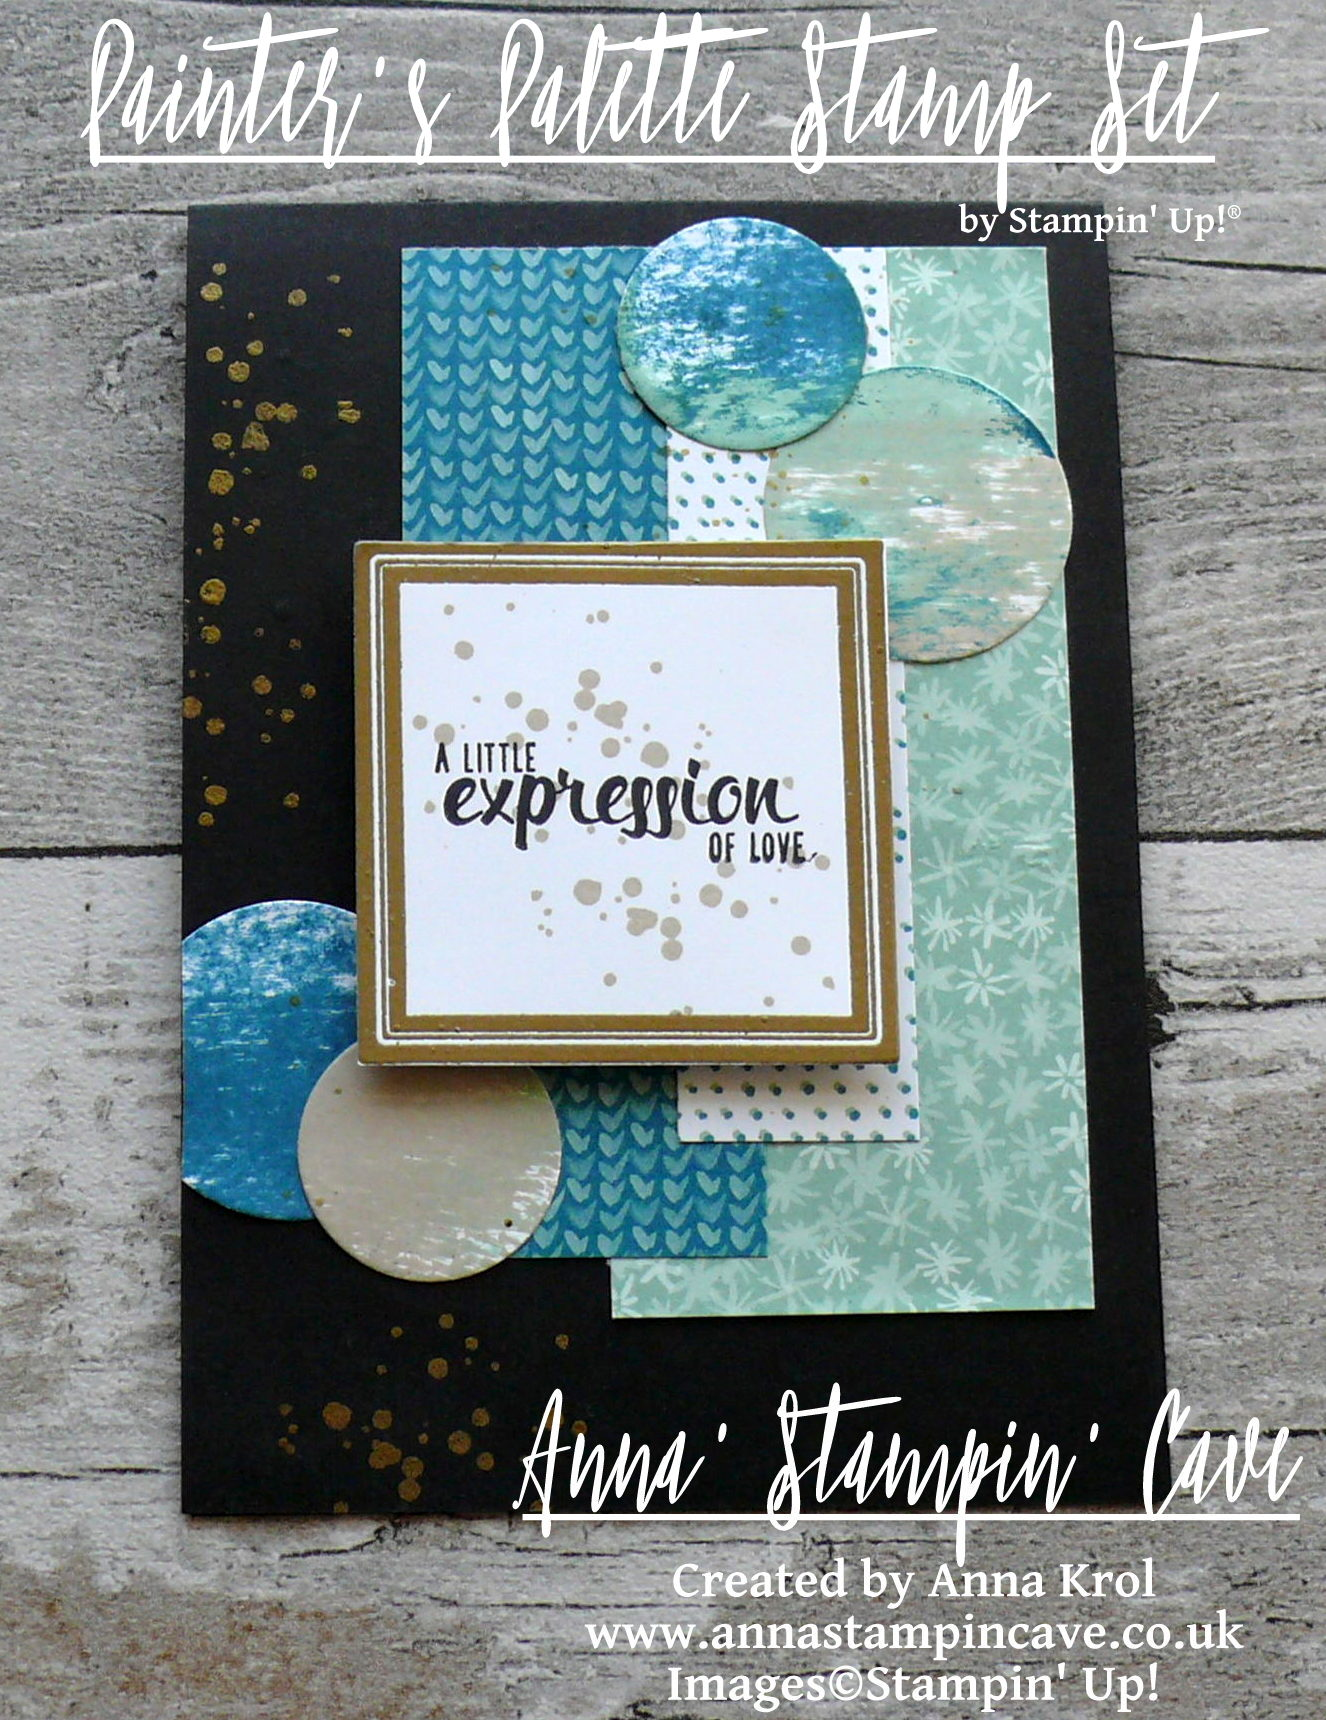 Anna' Stampin' Cave - Stampin' Up! Painter's Palette - A Little Expression Of Love Card